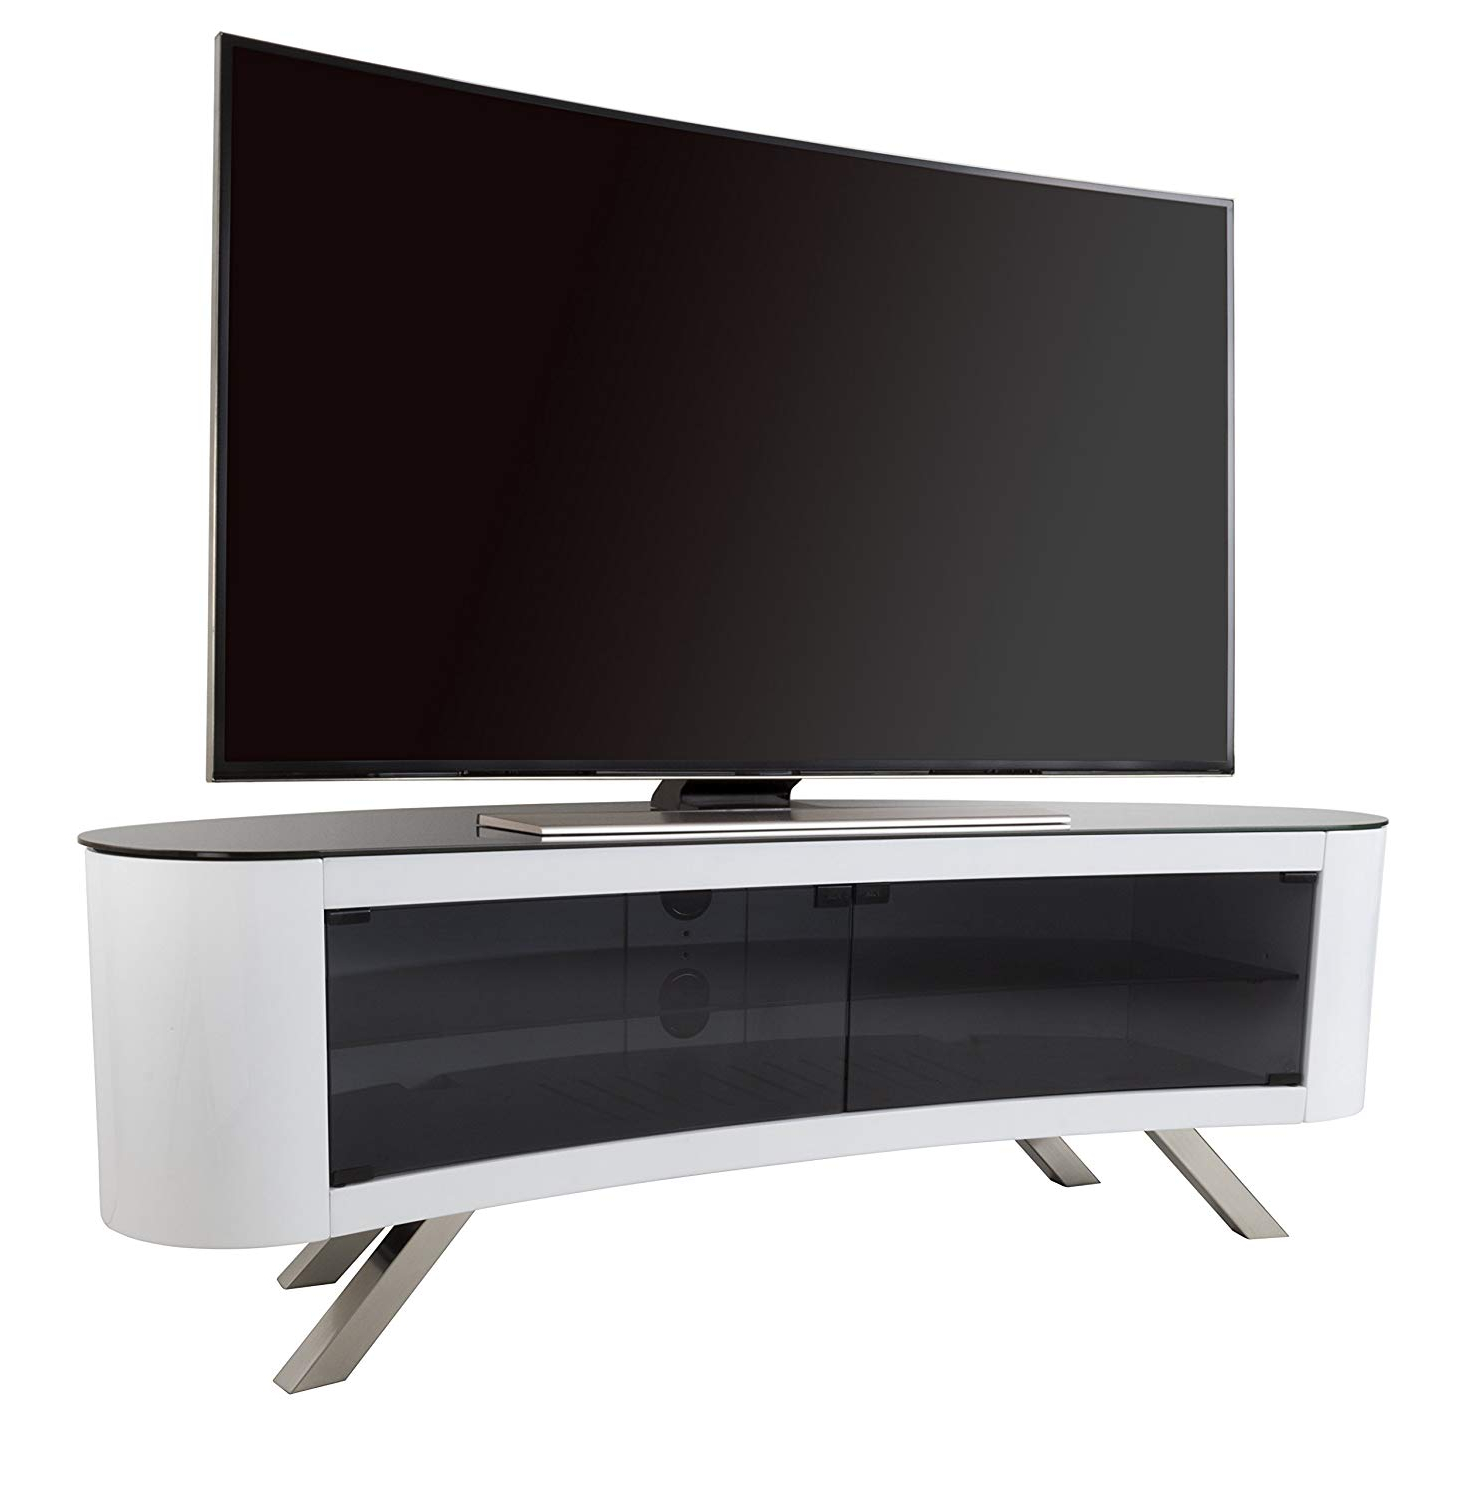 Recent Ovid White Tv Stand Intended For Avf Bay Curved Tv Stand In White: Amazon.co (View 14 of 20)